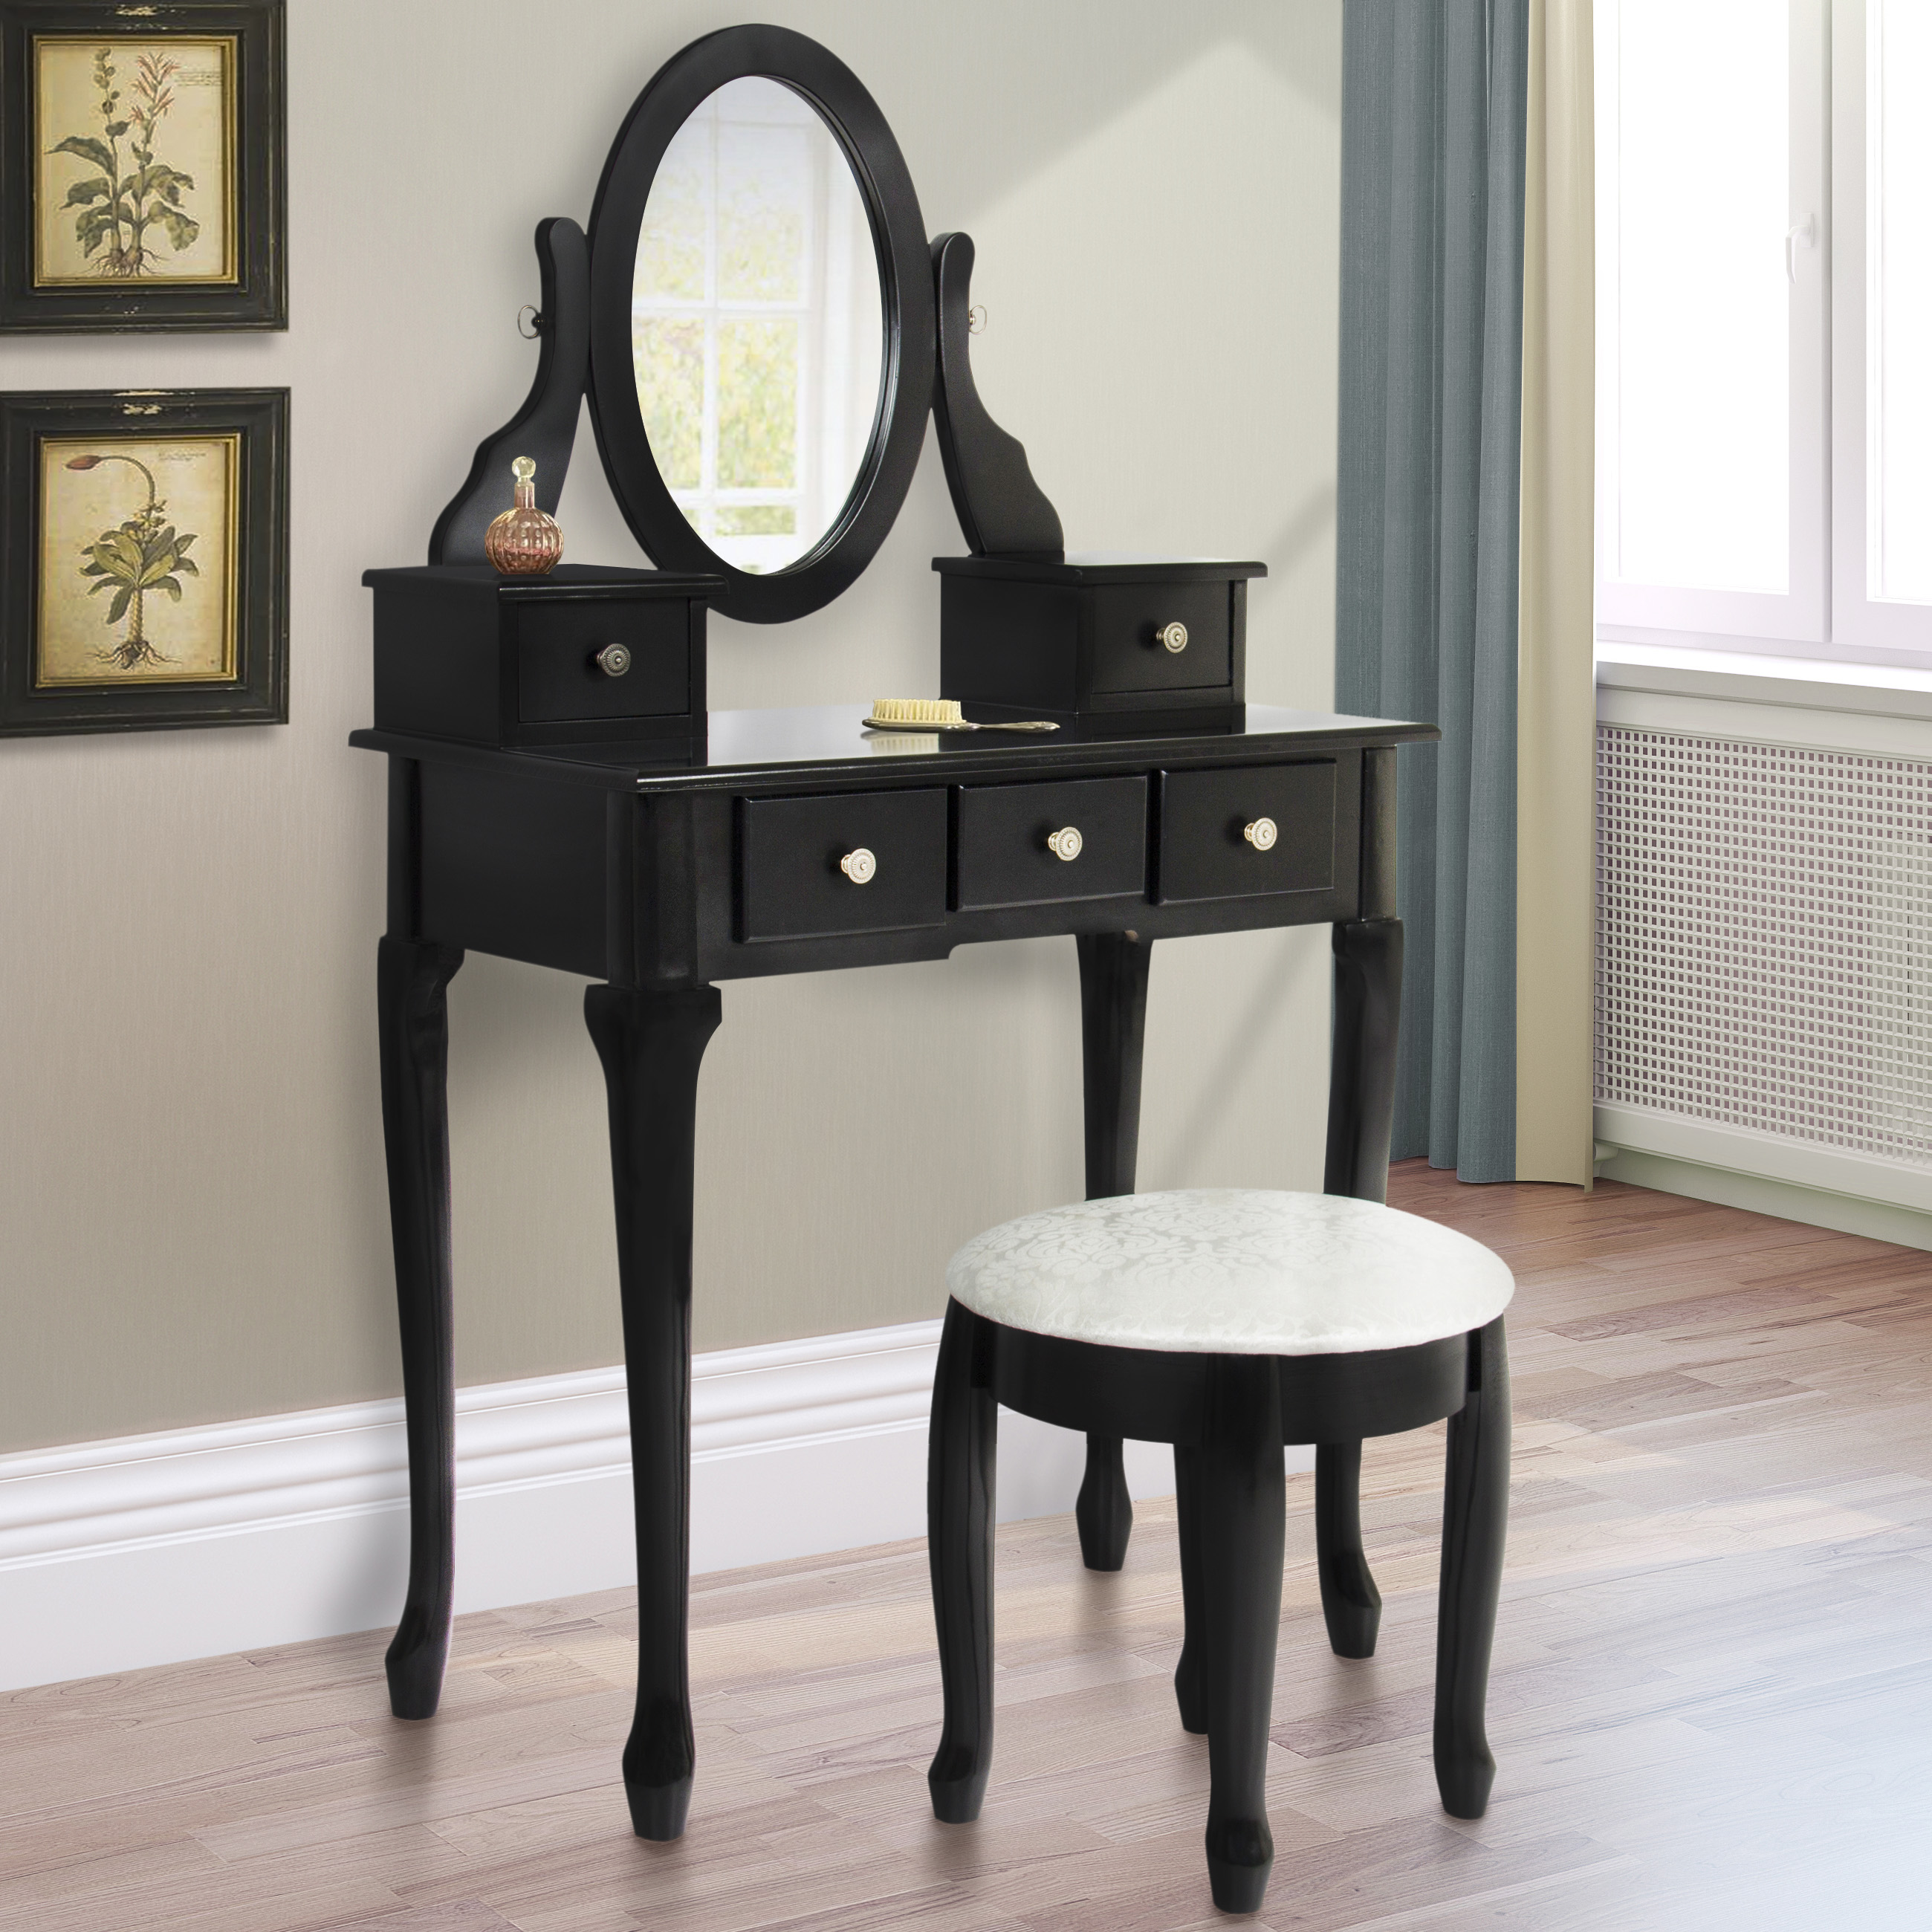 Best Choice Products Bathroom Vanity Table Set Makeup Desk Hair Dressing  Organizer Black   Walmart.com